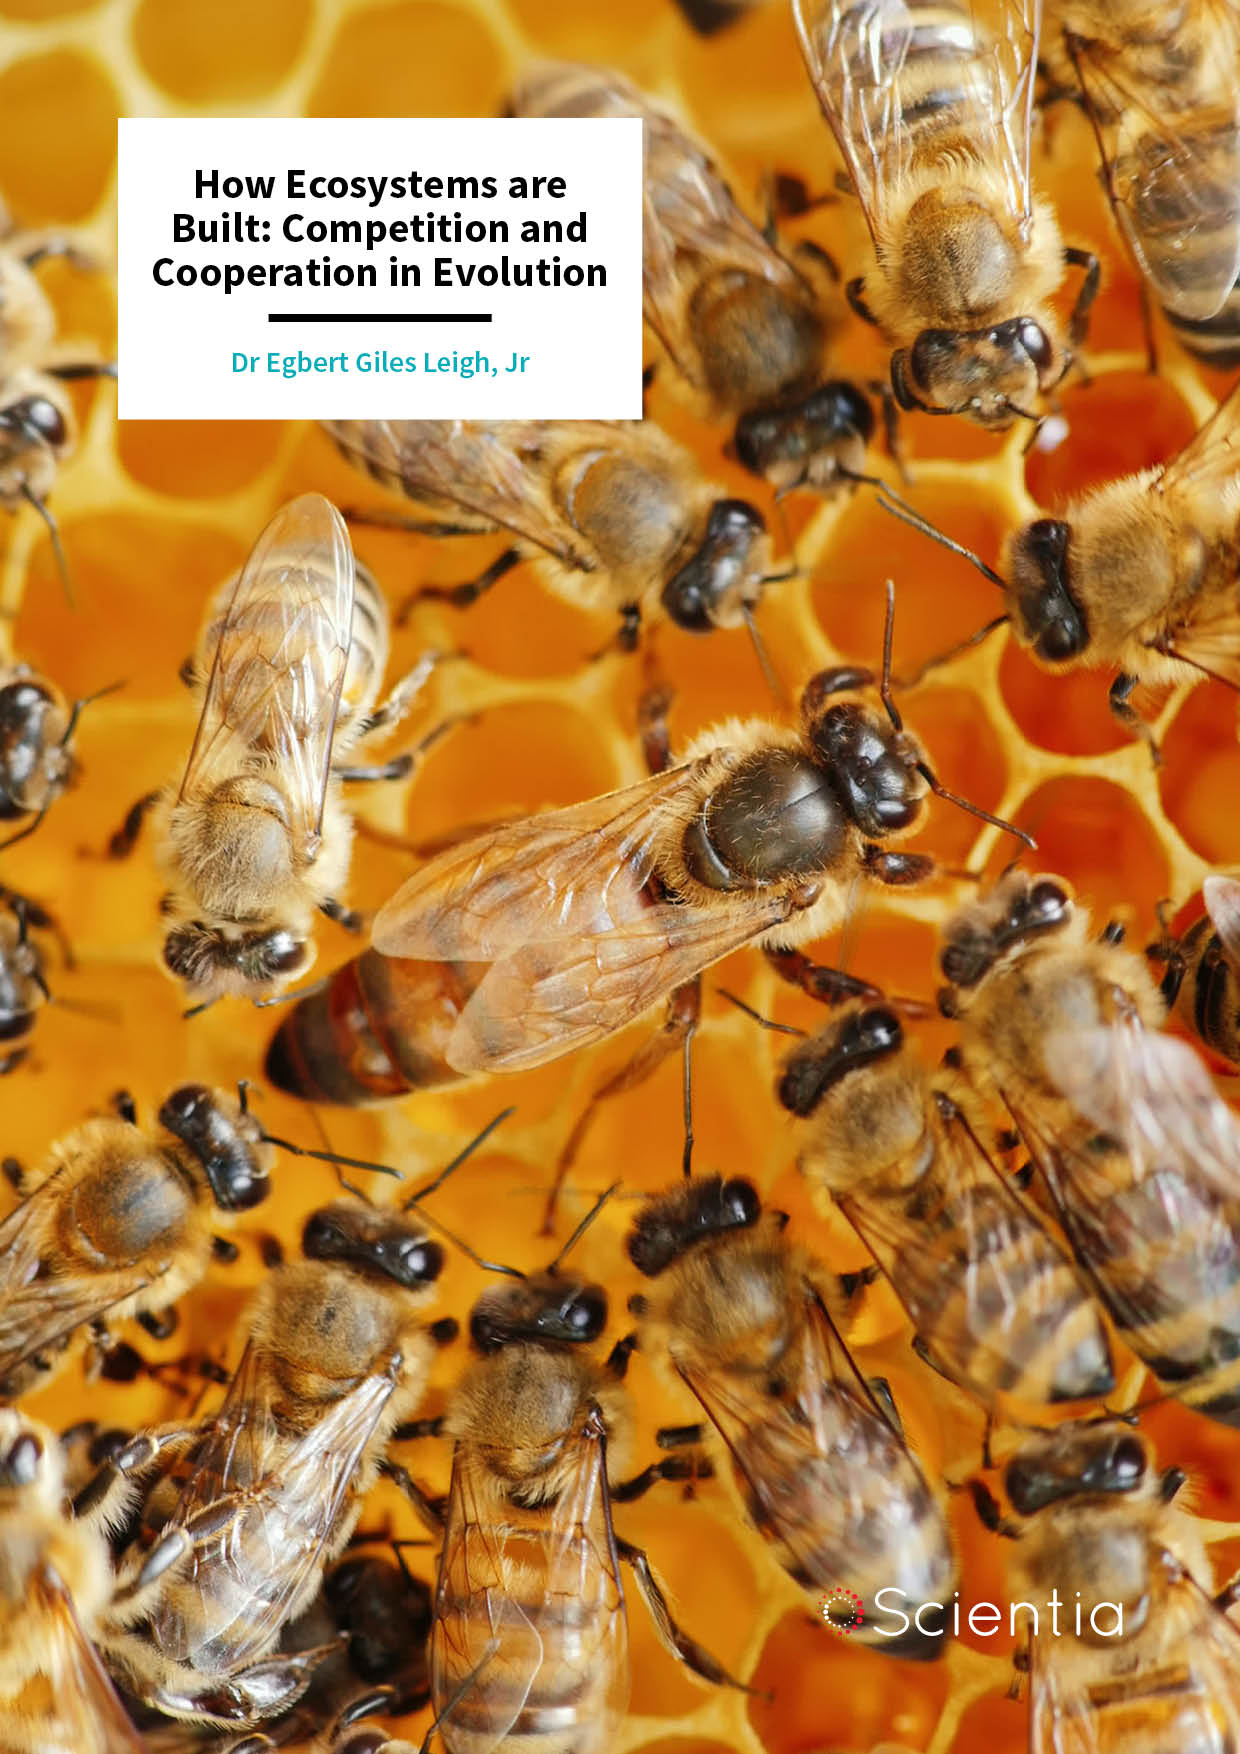 Dr Egbert Giles Leigh, Jr – How Ecosystems are Built: Competition and Cooperation in Evolution